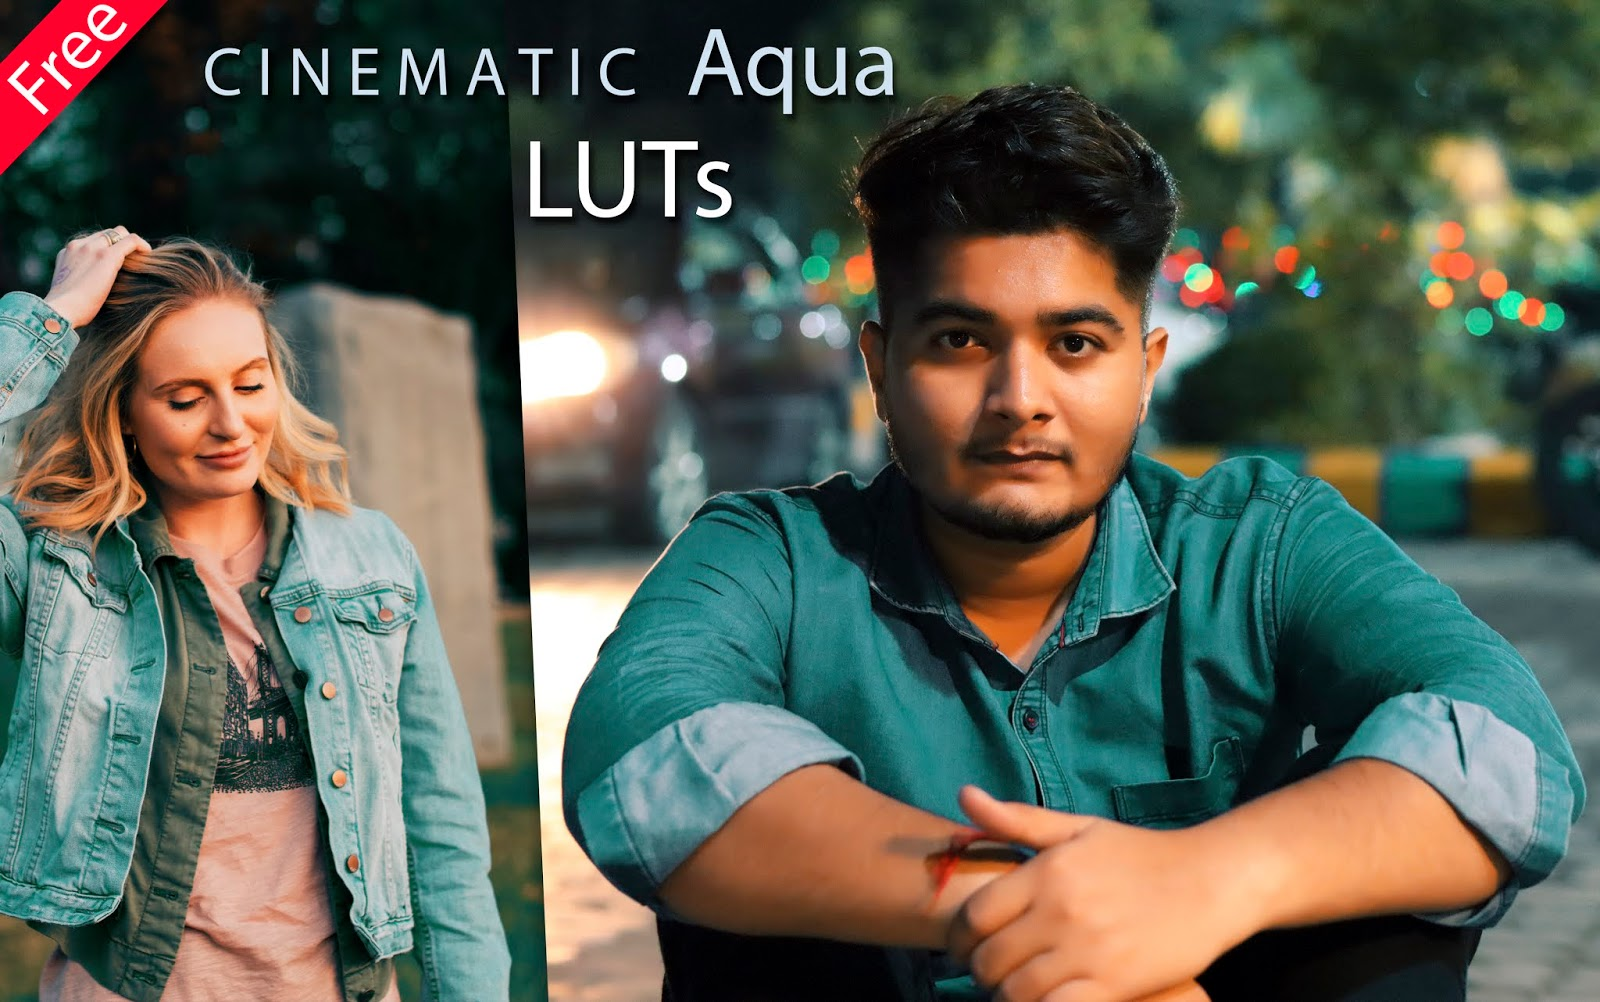 Download Cinematic Aqua LUTs for Free | How to Color Grade Cinematic Aqua Effect in Photoshop & Premiere Pro